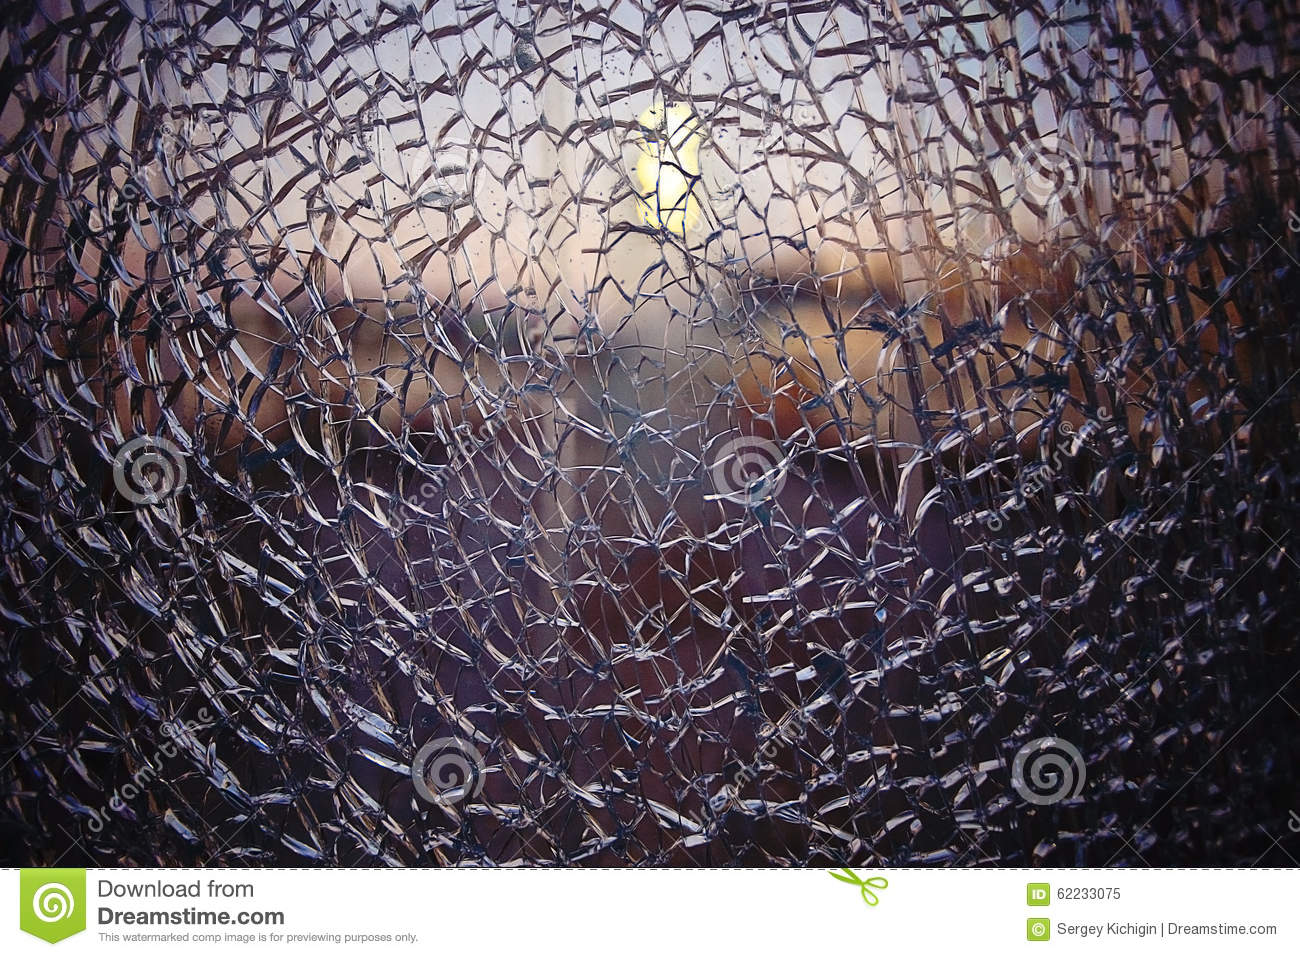 Texture cracked fractured glass